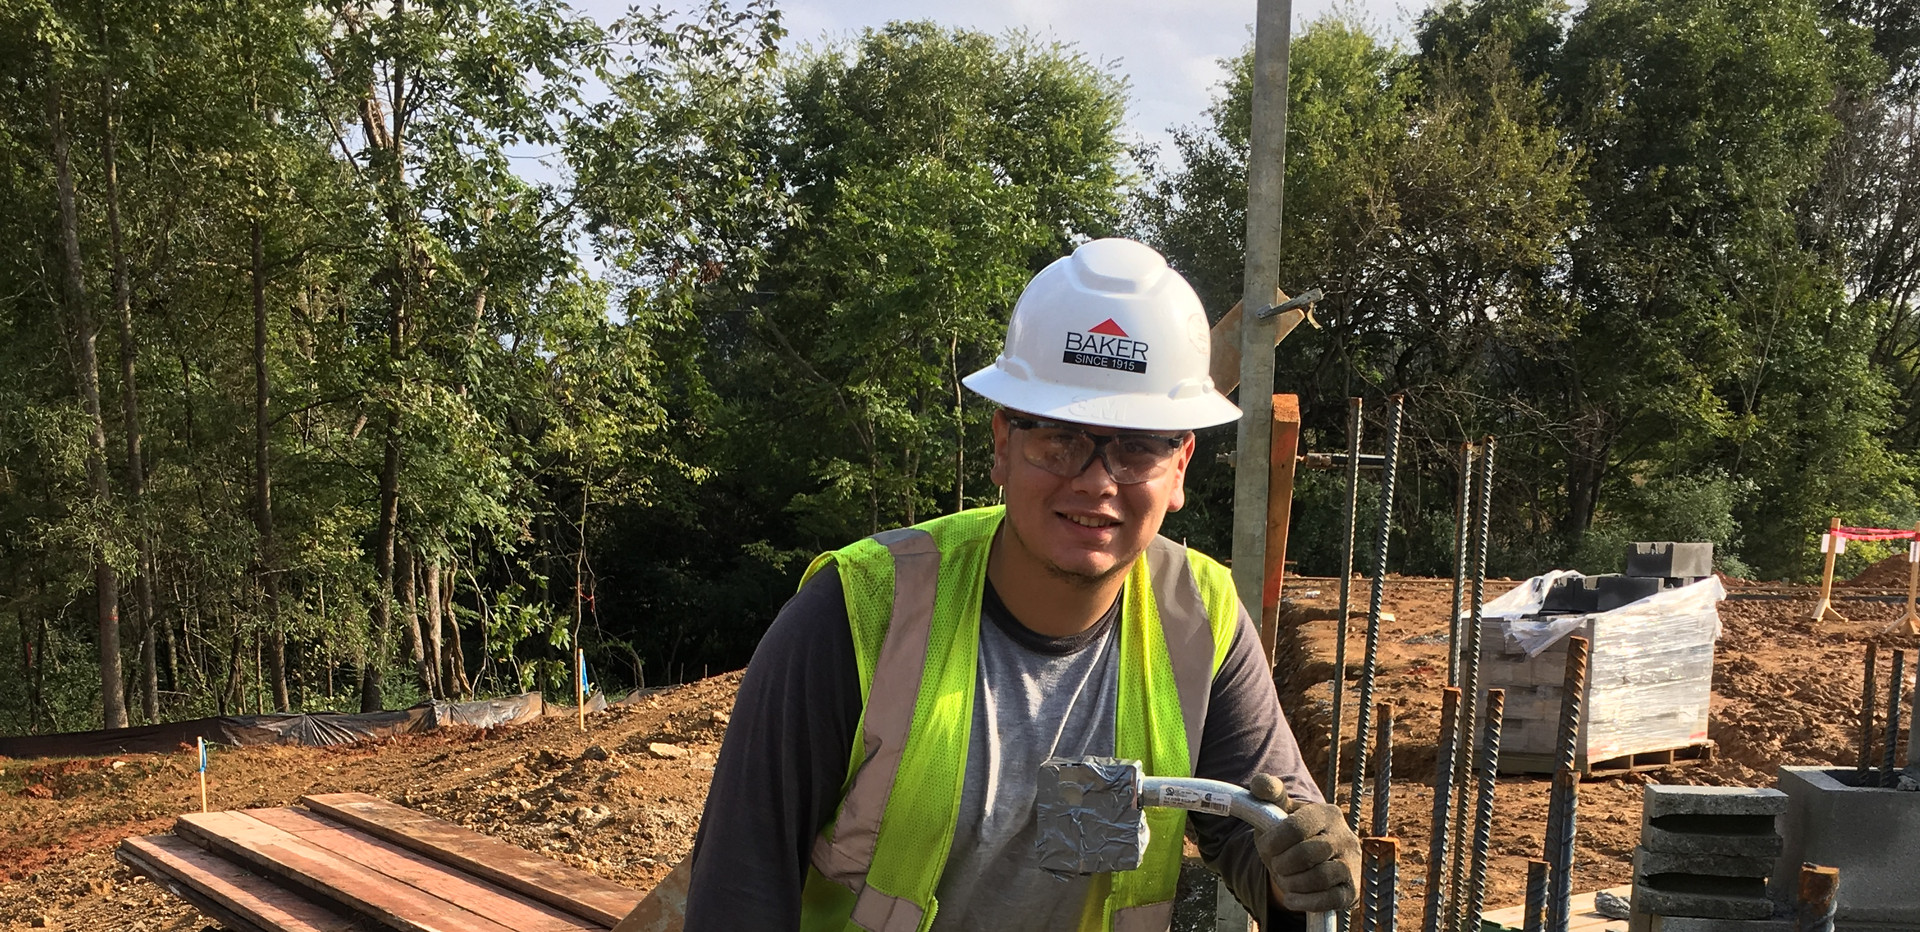 Cristian enjoying his new electrician career/employment with Baker Power